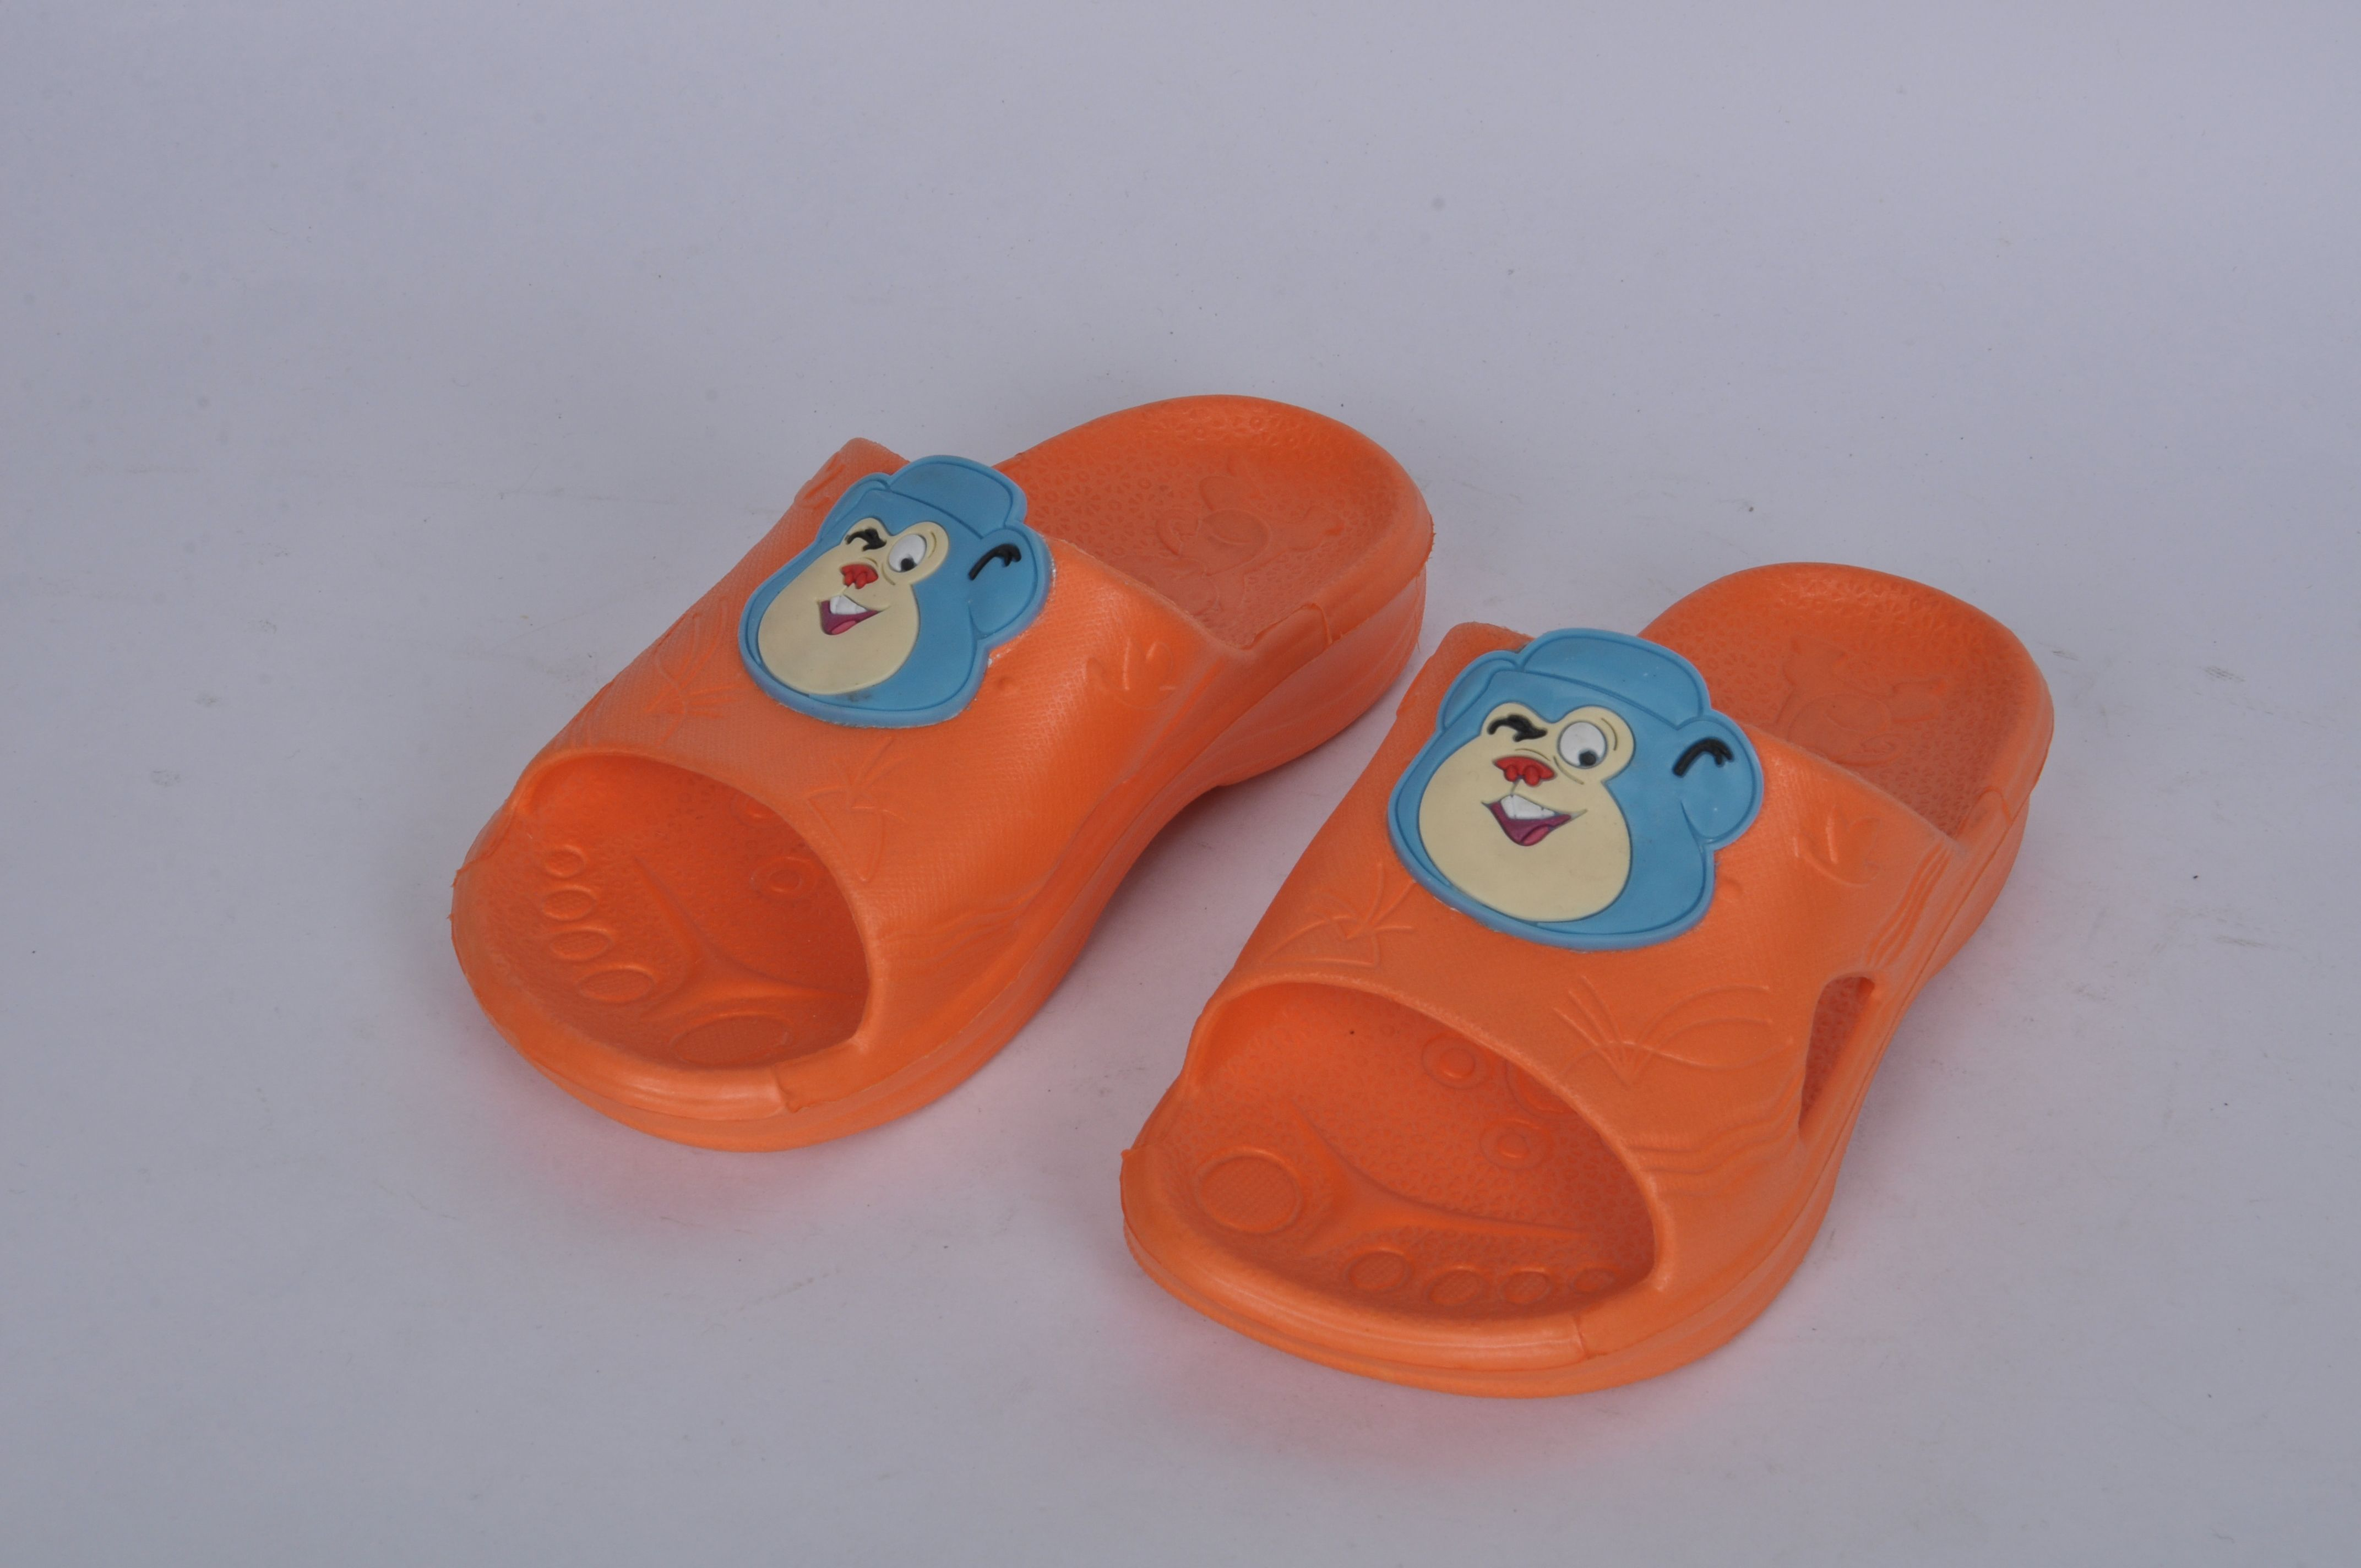 Buy super cool Keymon footwear at stores near you now